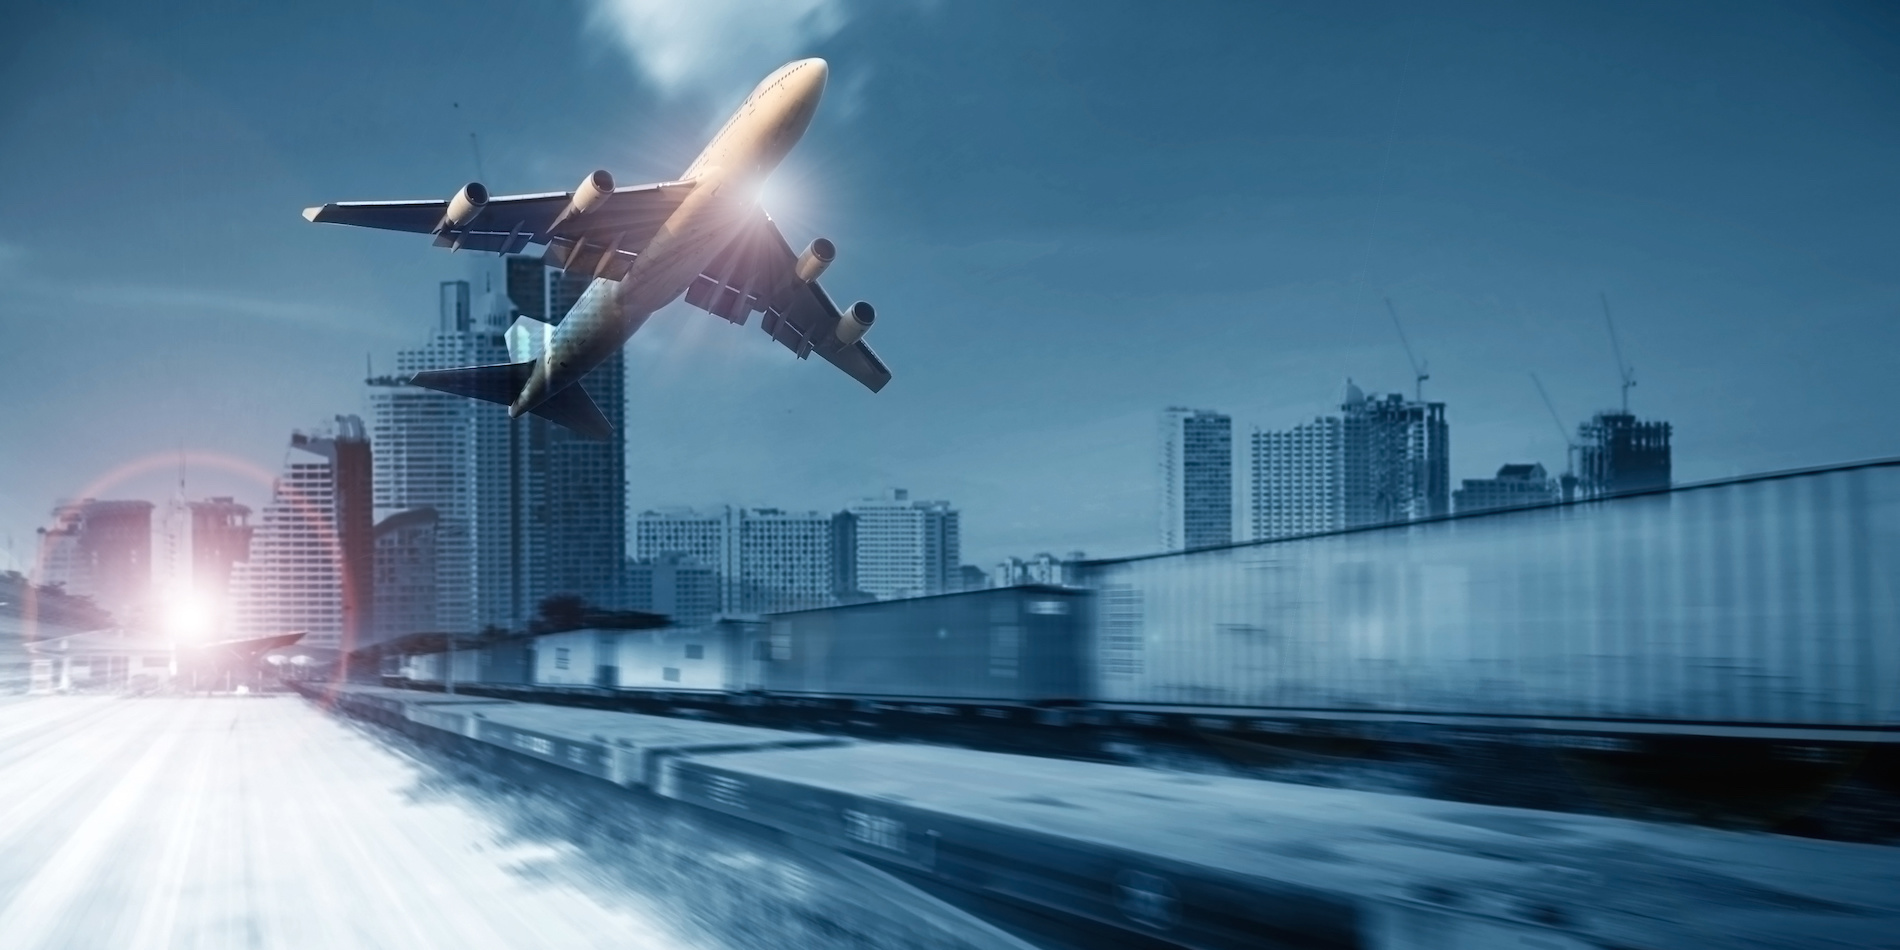 plane-over-freight-train.jpg